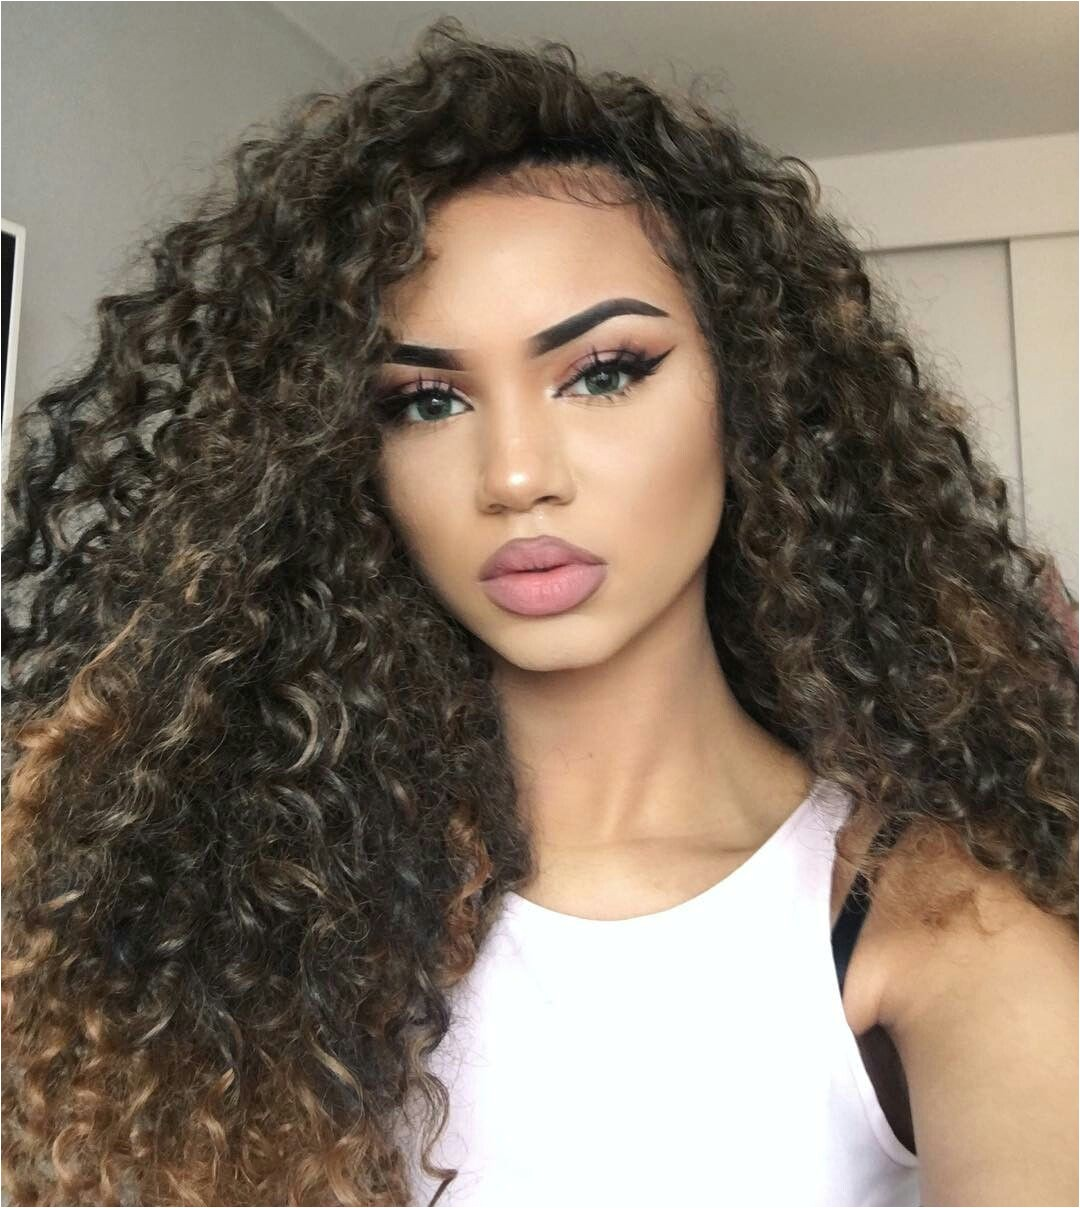 Explore Amazing Makeup Curly Hairstyles and more